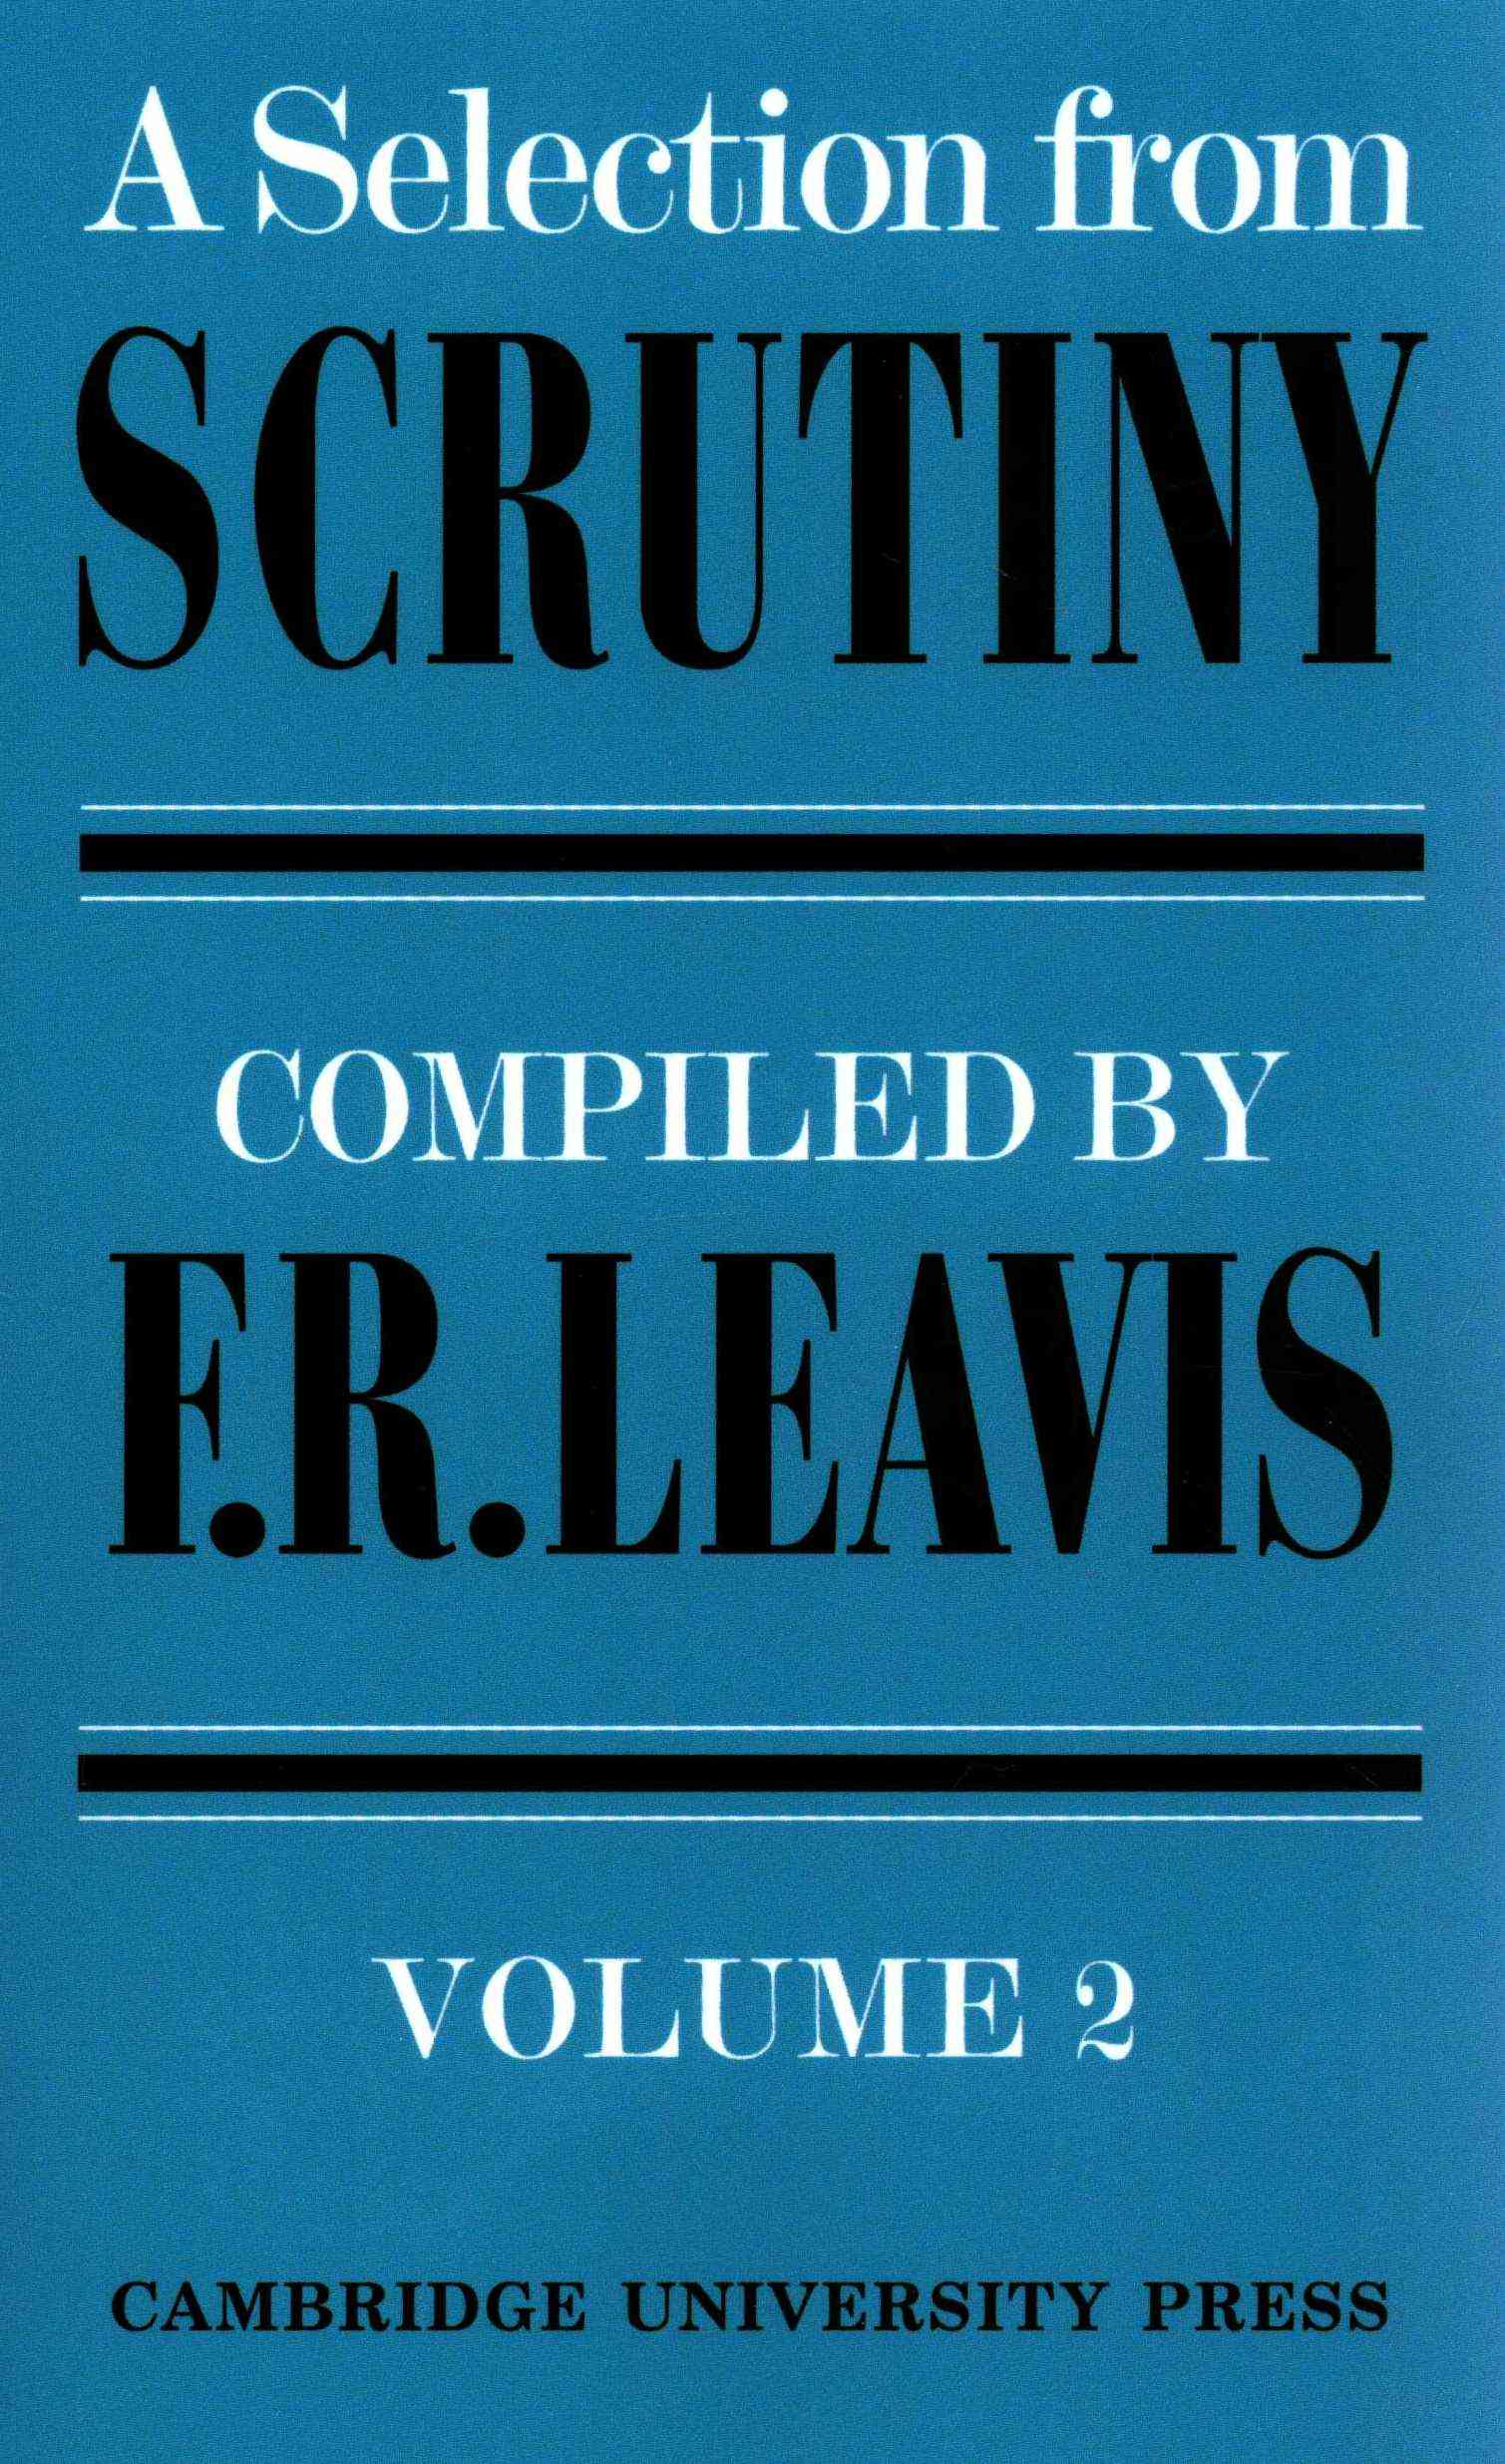 A Selection from Scrutiny By Leavis, F. R. (EDT)